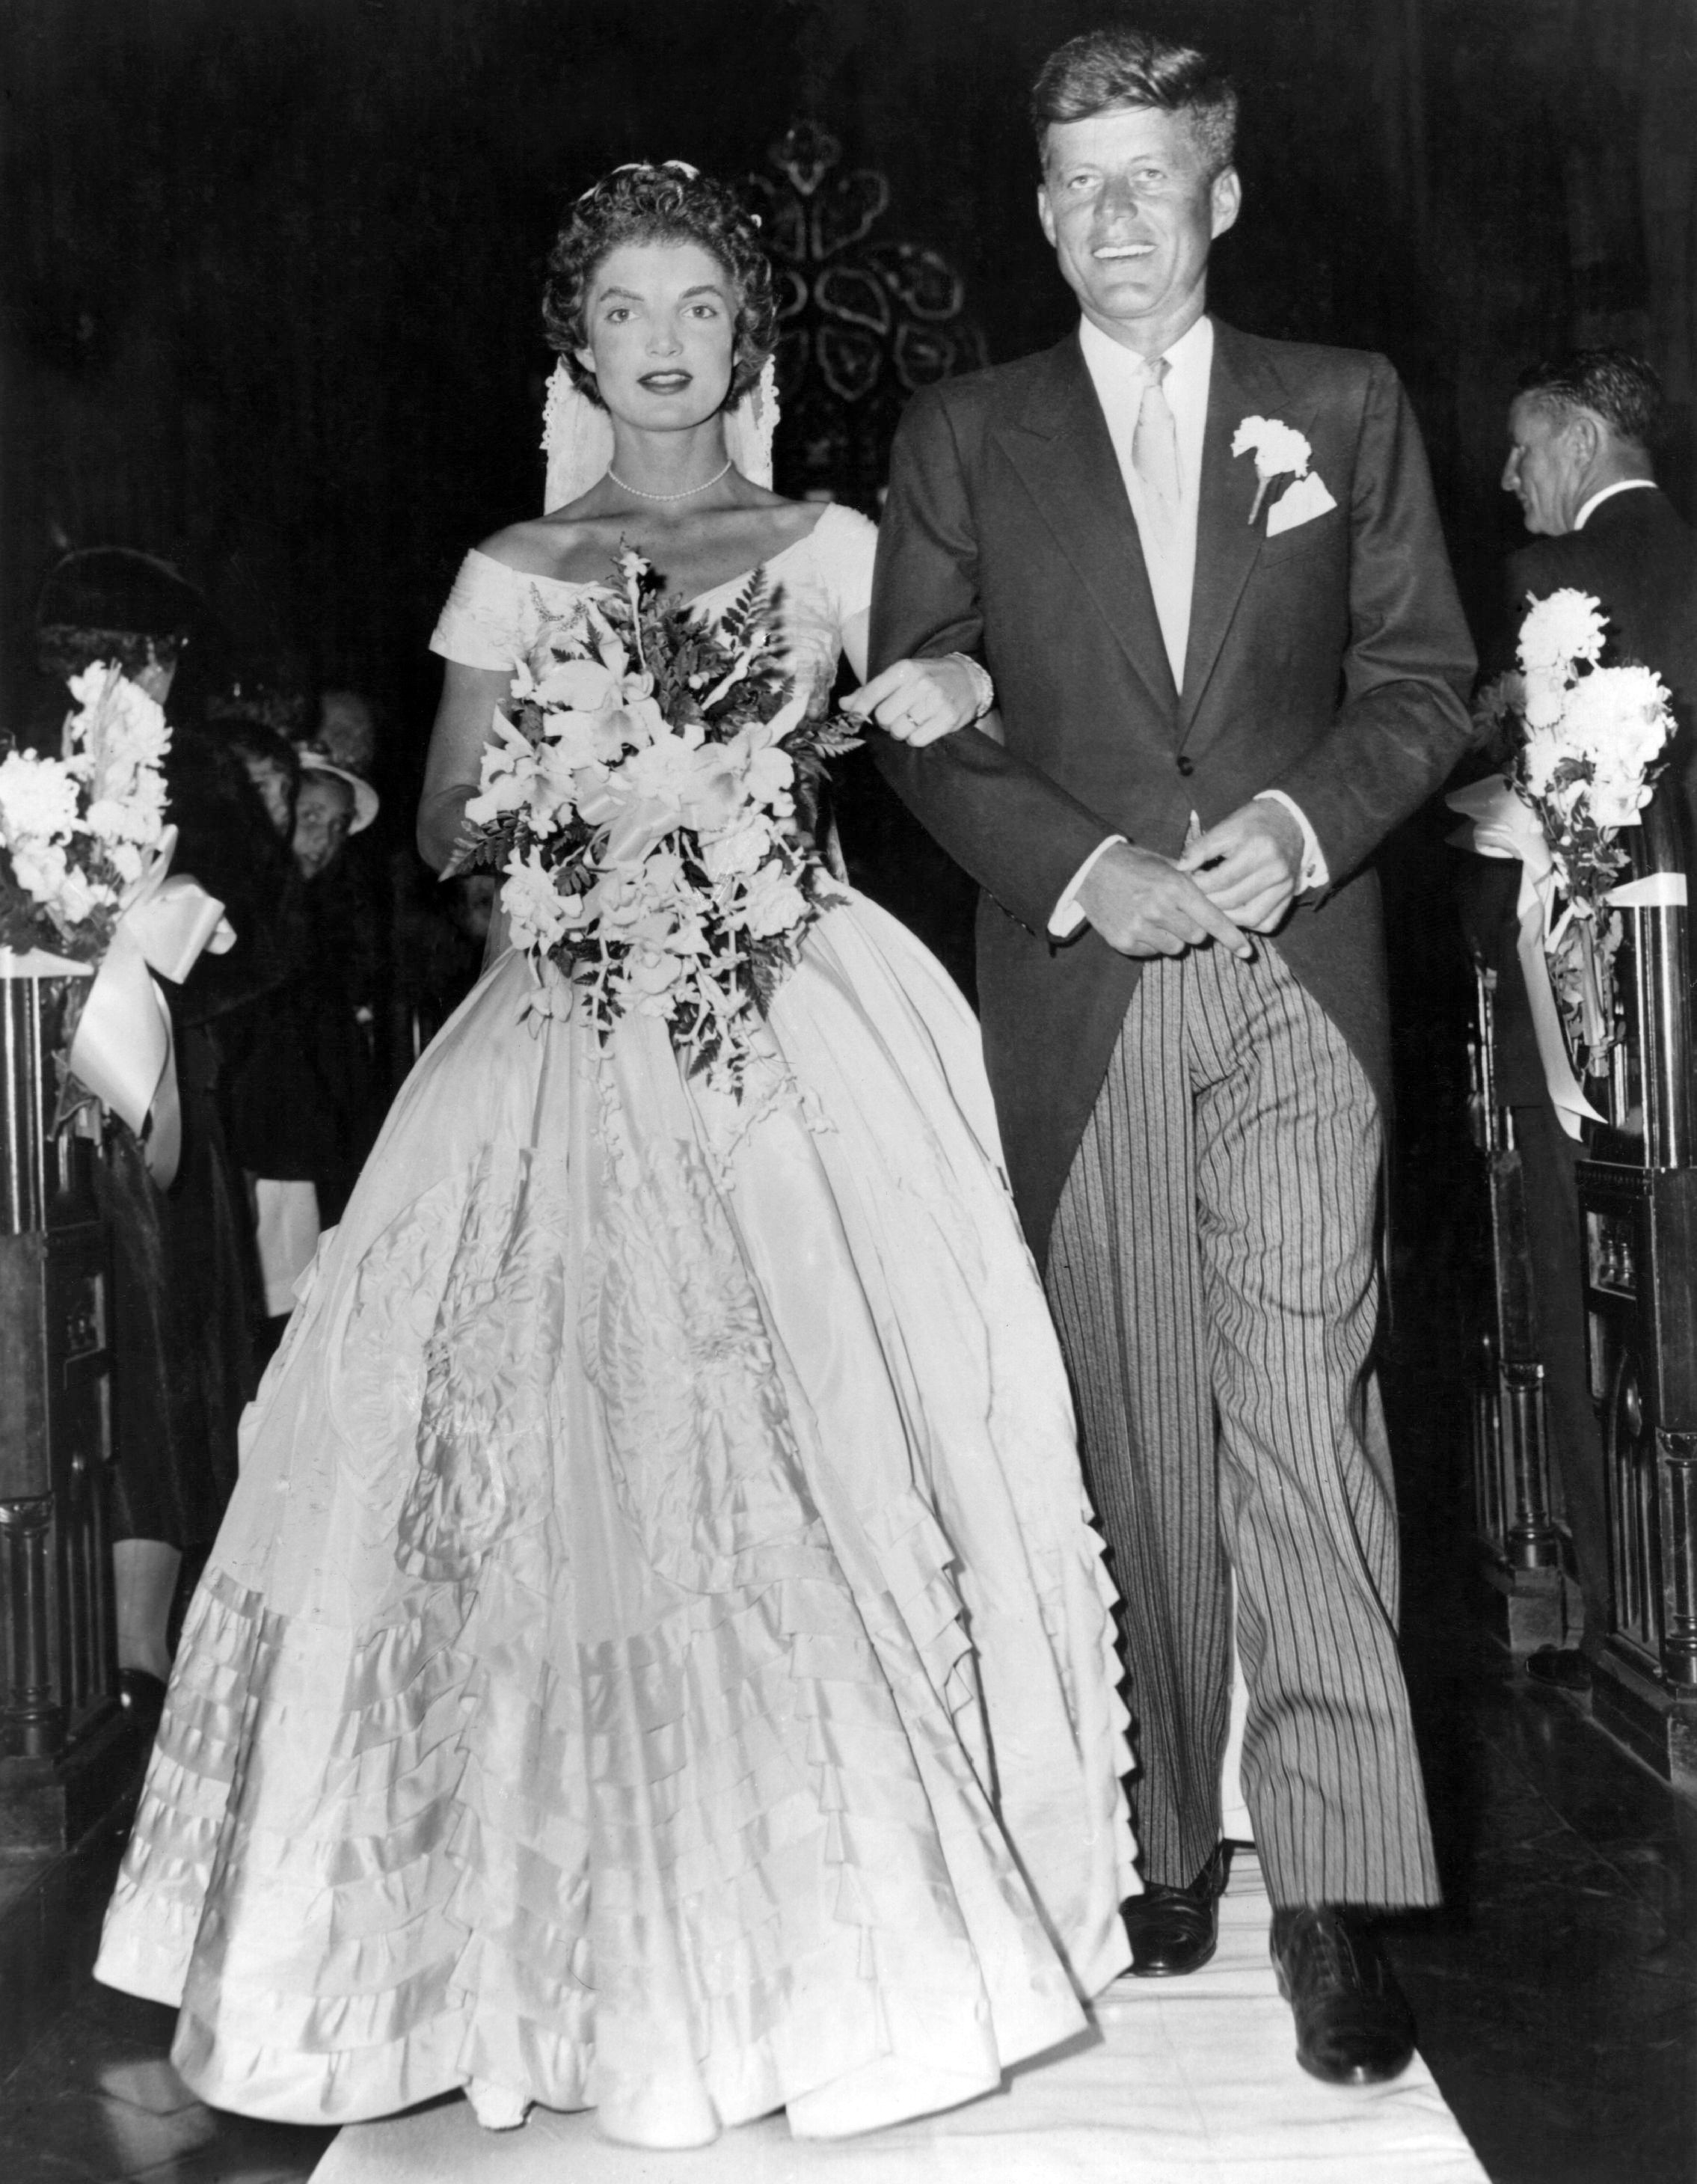 Fab edit 15 iconic celebrity wedding dresses john kennedy john senator john fitzgerald kennedy 1917 1963 democratic senator for massachusetts escorts his bride jacqueline lee bouvier 1929 1994 down the church junglespirit Gallery